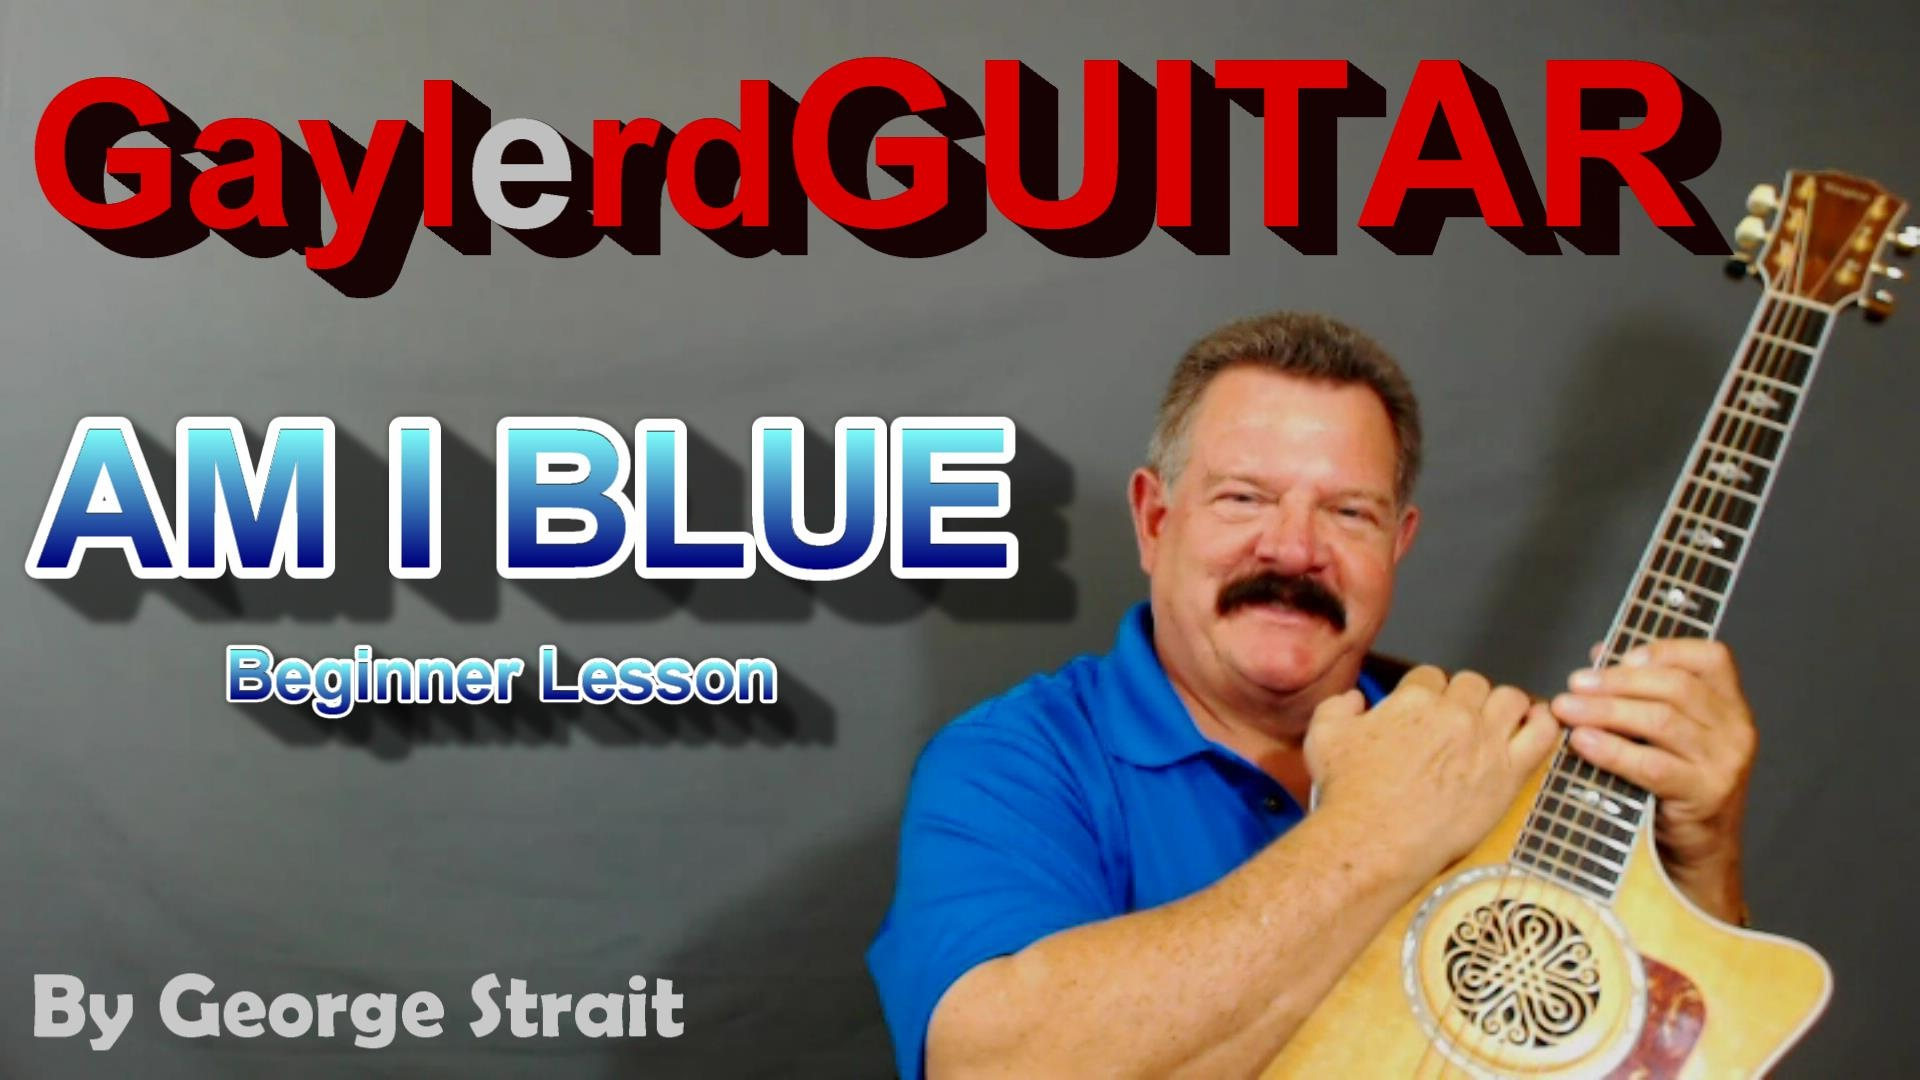 AM I BLUE  by George Strait - BEGINNER LESSON